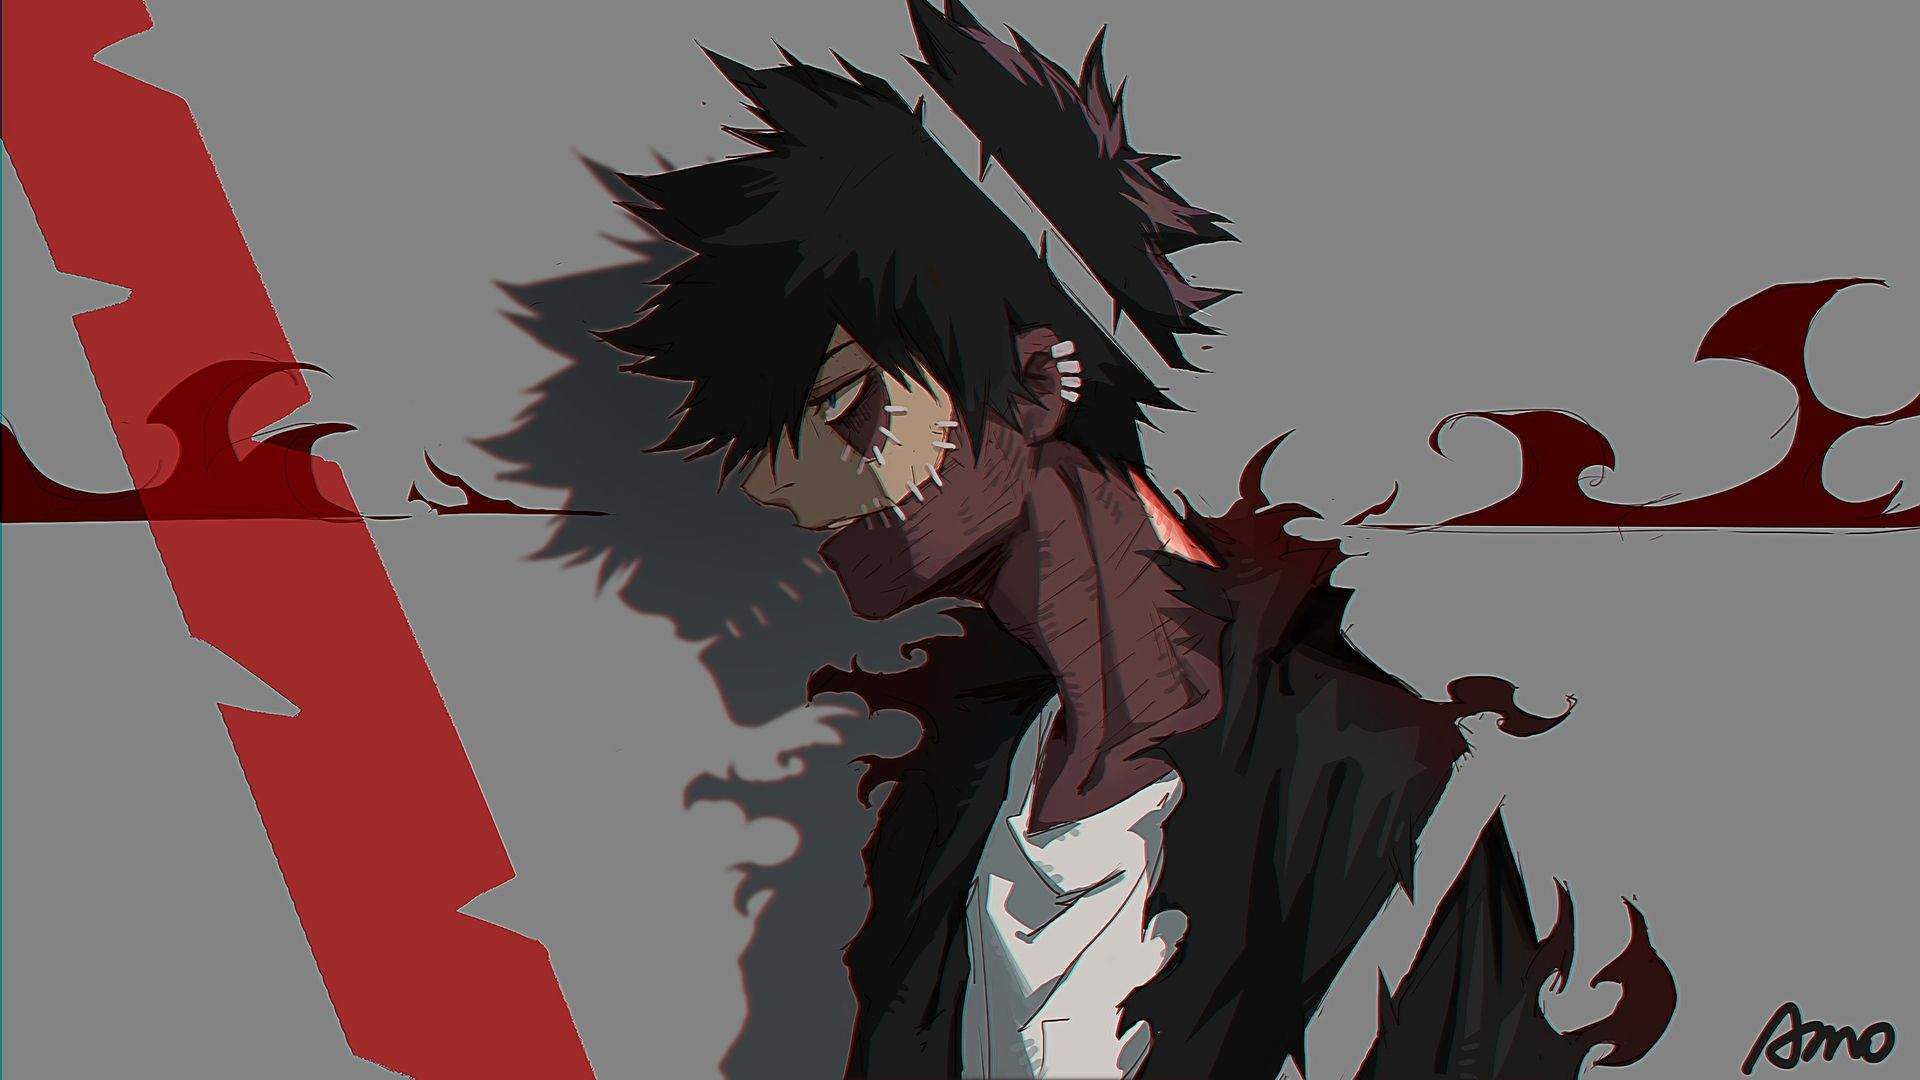 Dabi My Hero Academia Hd 1920x1080 C1323 Hero Wallpaper Anime